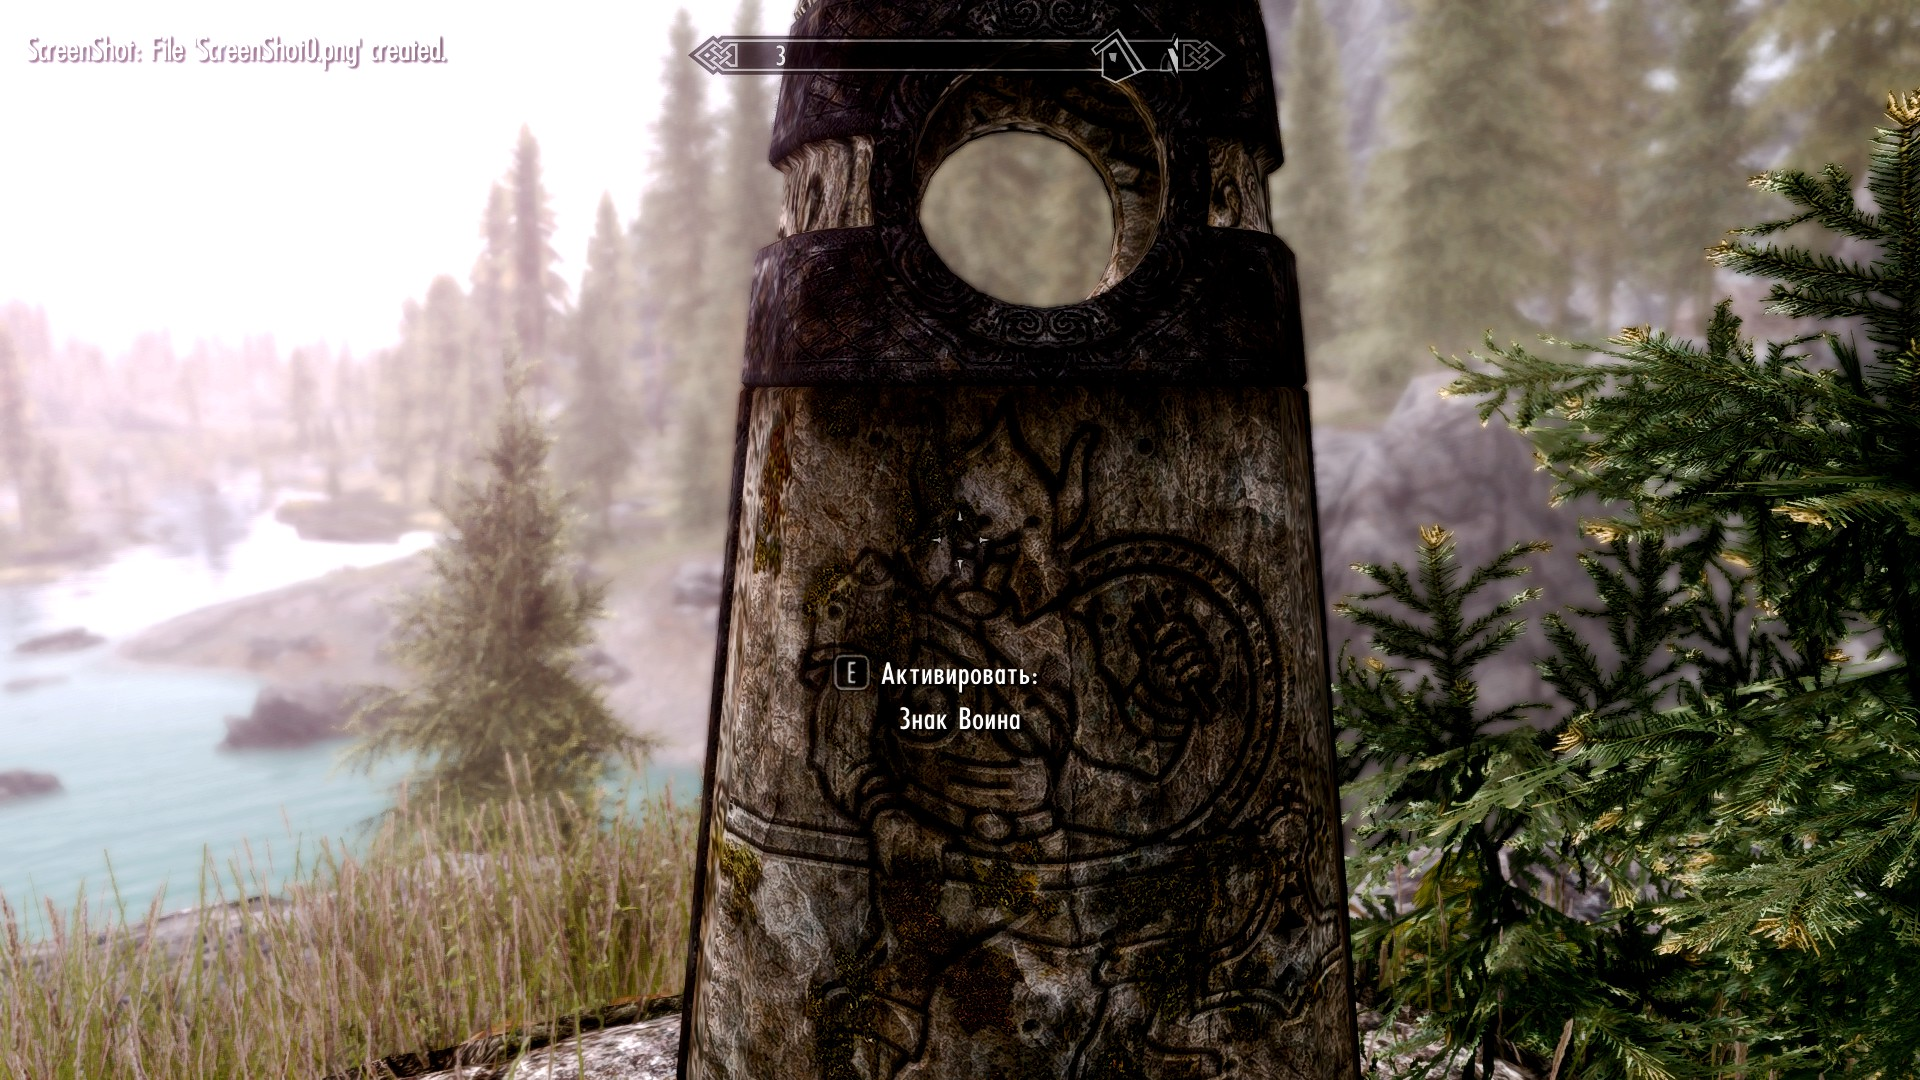 20171002111734_1.jpg - Elder Scrolls 5: Skyrim, the